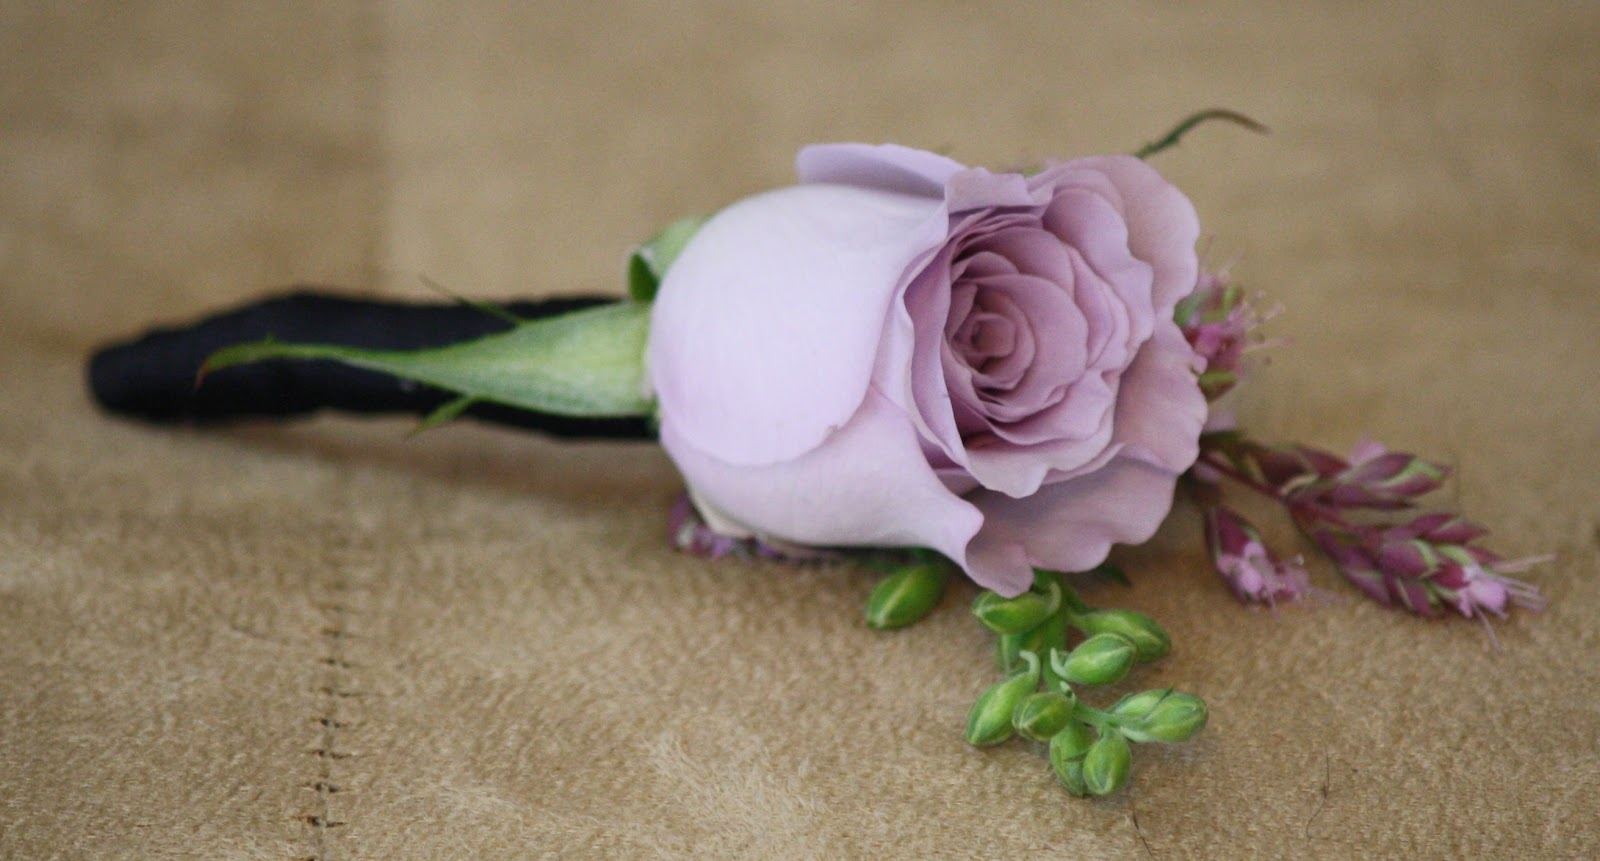 Rose Boutonniere - Boutonnieres - Wedding Flowers - Groom - Usher - Best Man - Groomsmen - Ushers - Groom's Boutonniere